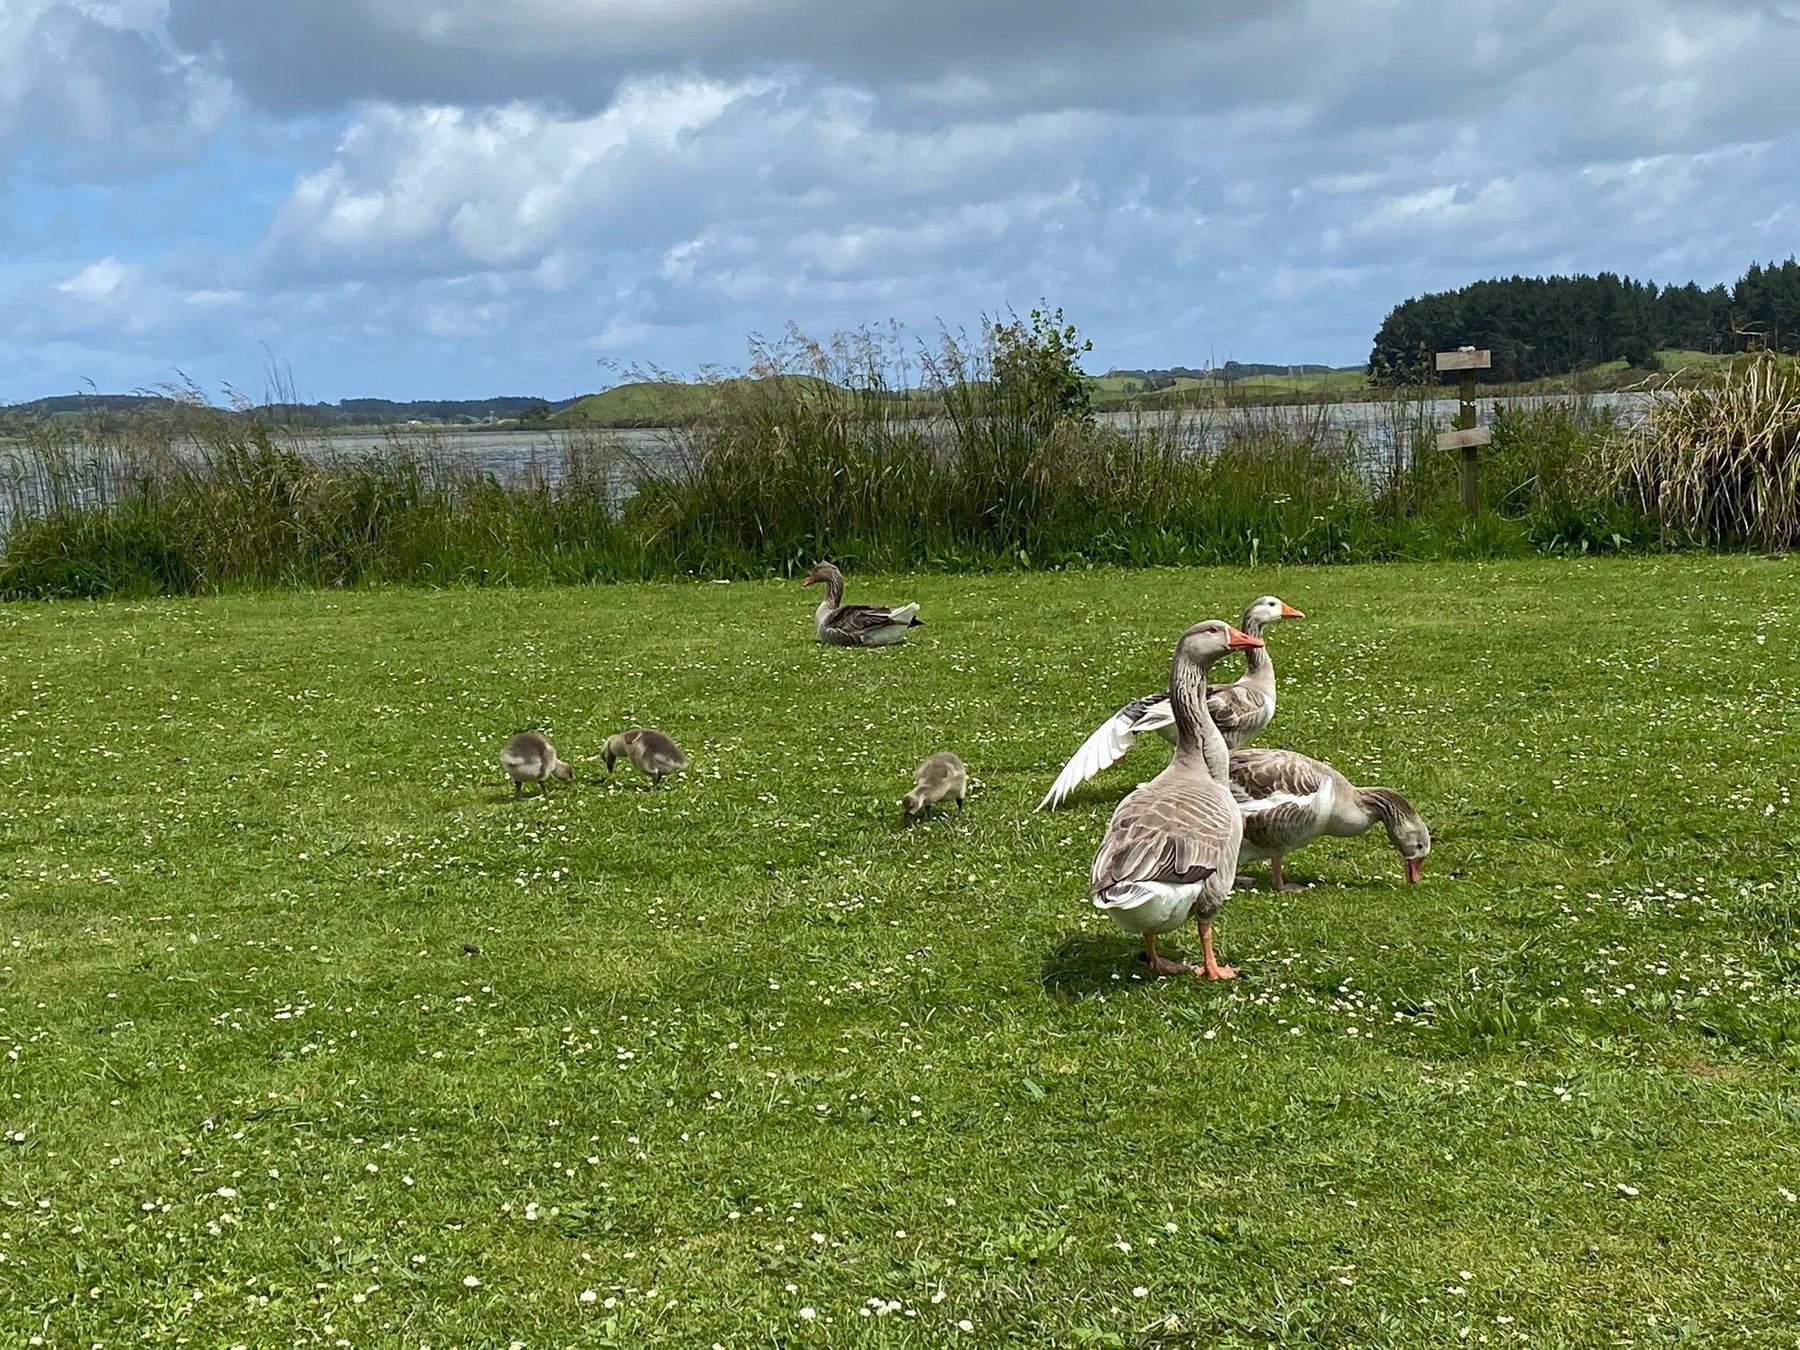 Brown and white geese with some cygnets, feeding.